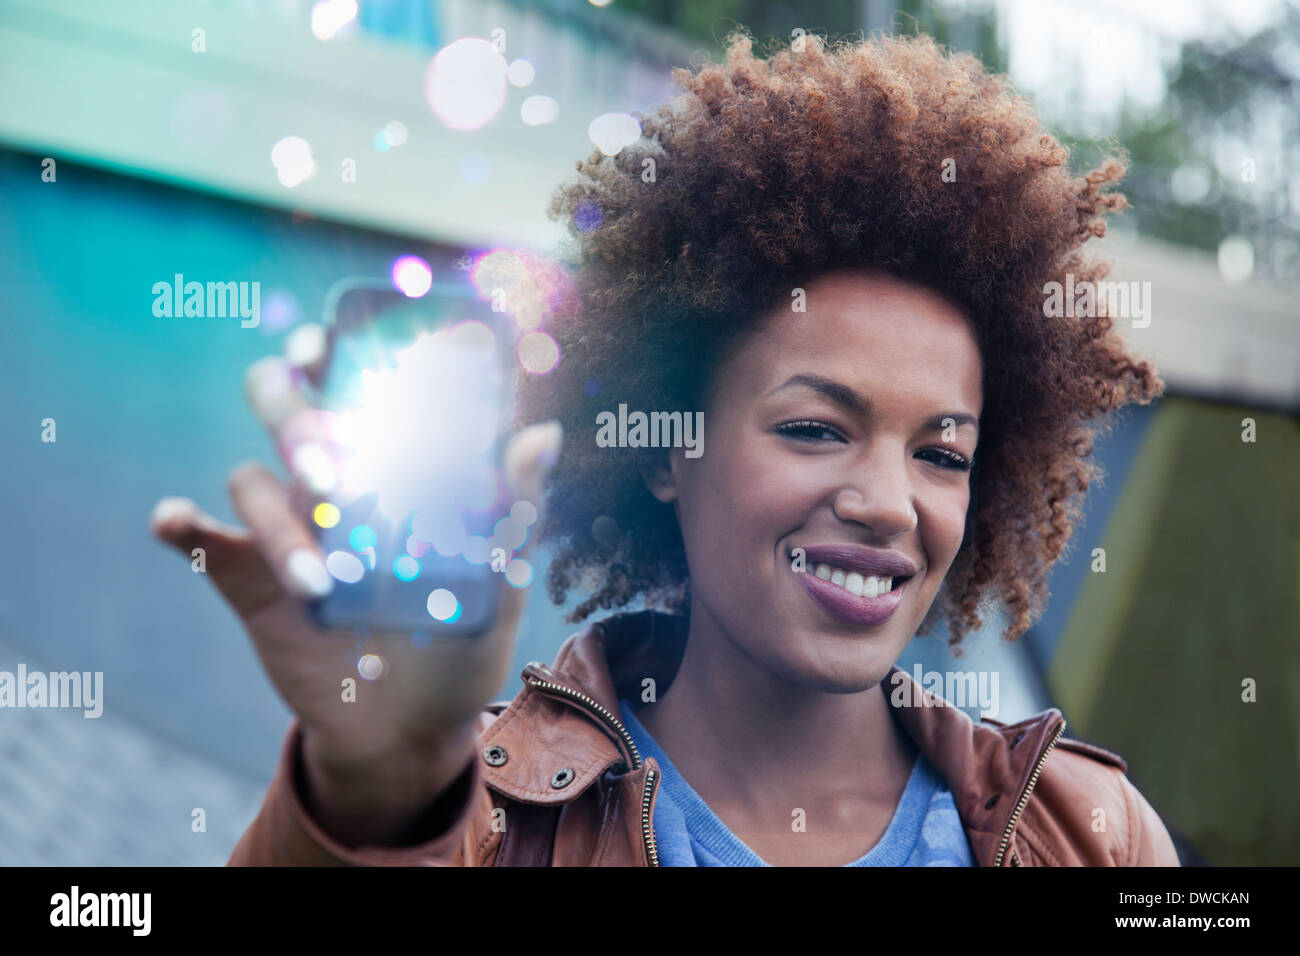 Young woman holding up smartphone with glowing lights coming out - Stock Image